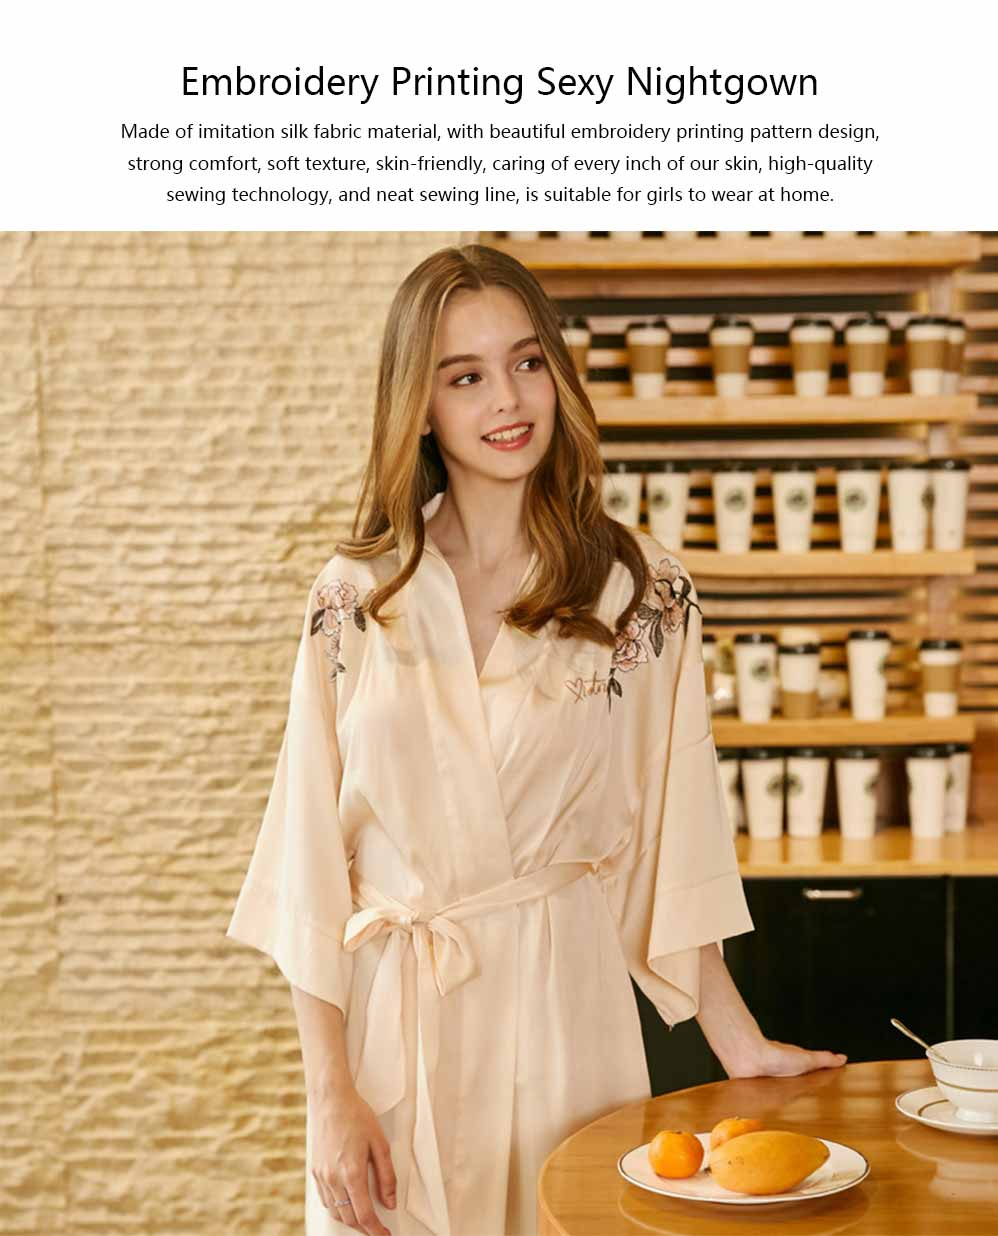 Peony Beautiful Embroidery Printing Sexy Nightgown, Female Summer Catwalk Imitation Silk Fabric Pajamas 0